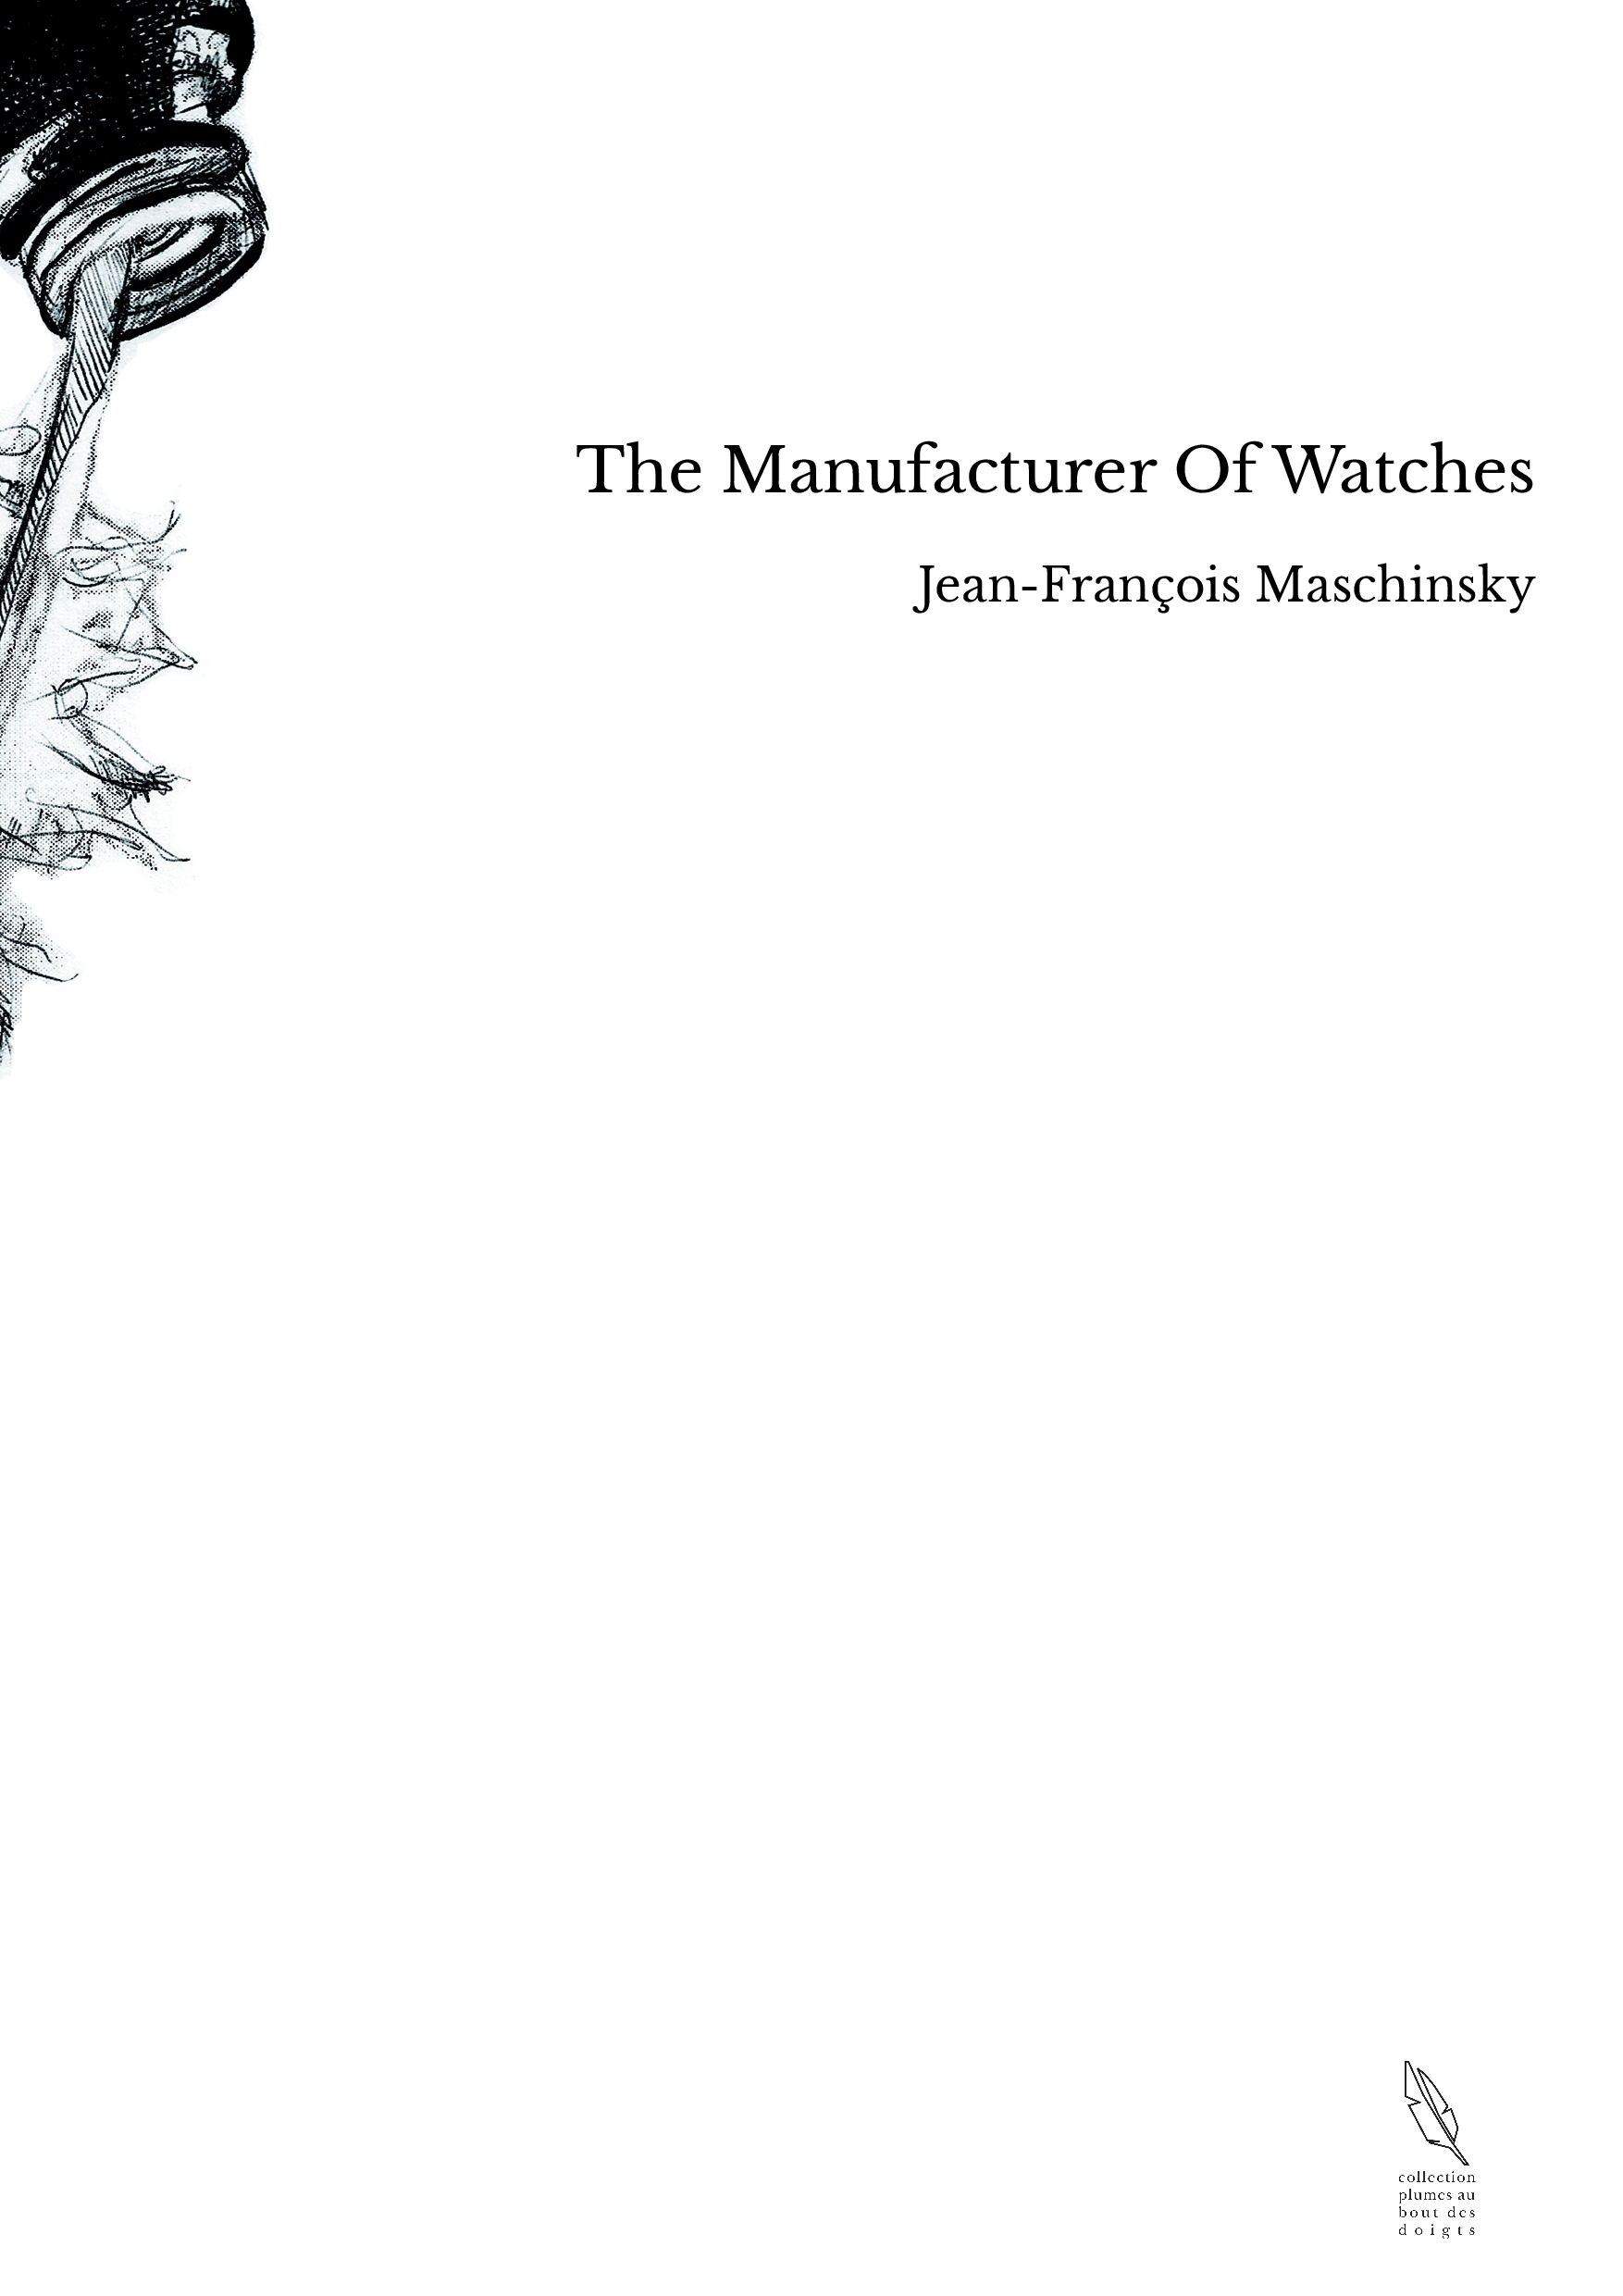 The Manufacturer Of Watches